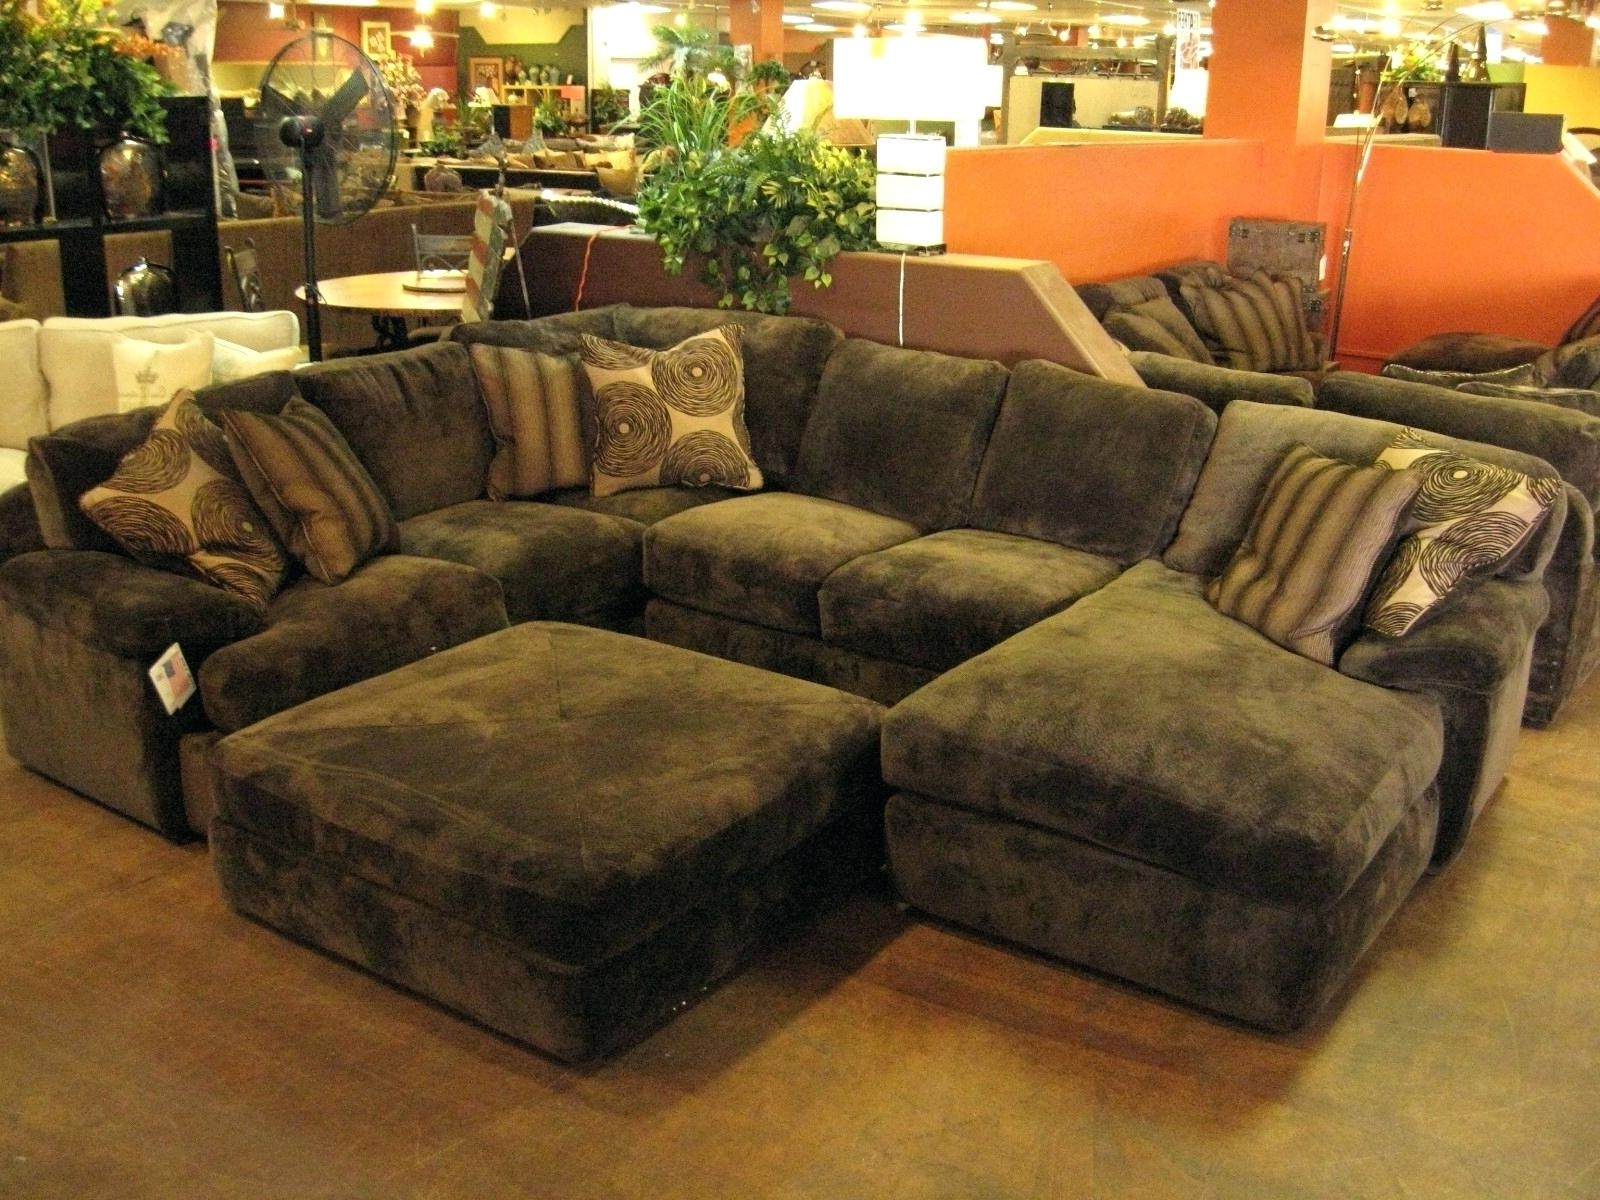 Sectional Sofas Okc Or T Cheap For Sale Ok – Koupelnynaklic With 2018 Okc Sectional Sofas (View 16 of 20)